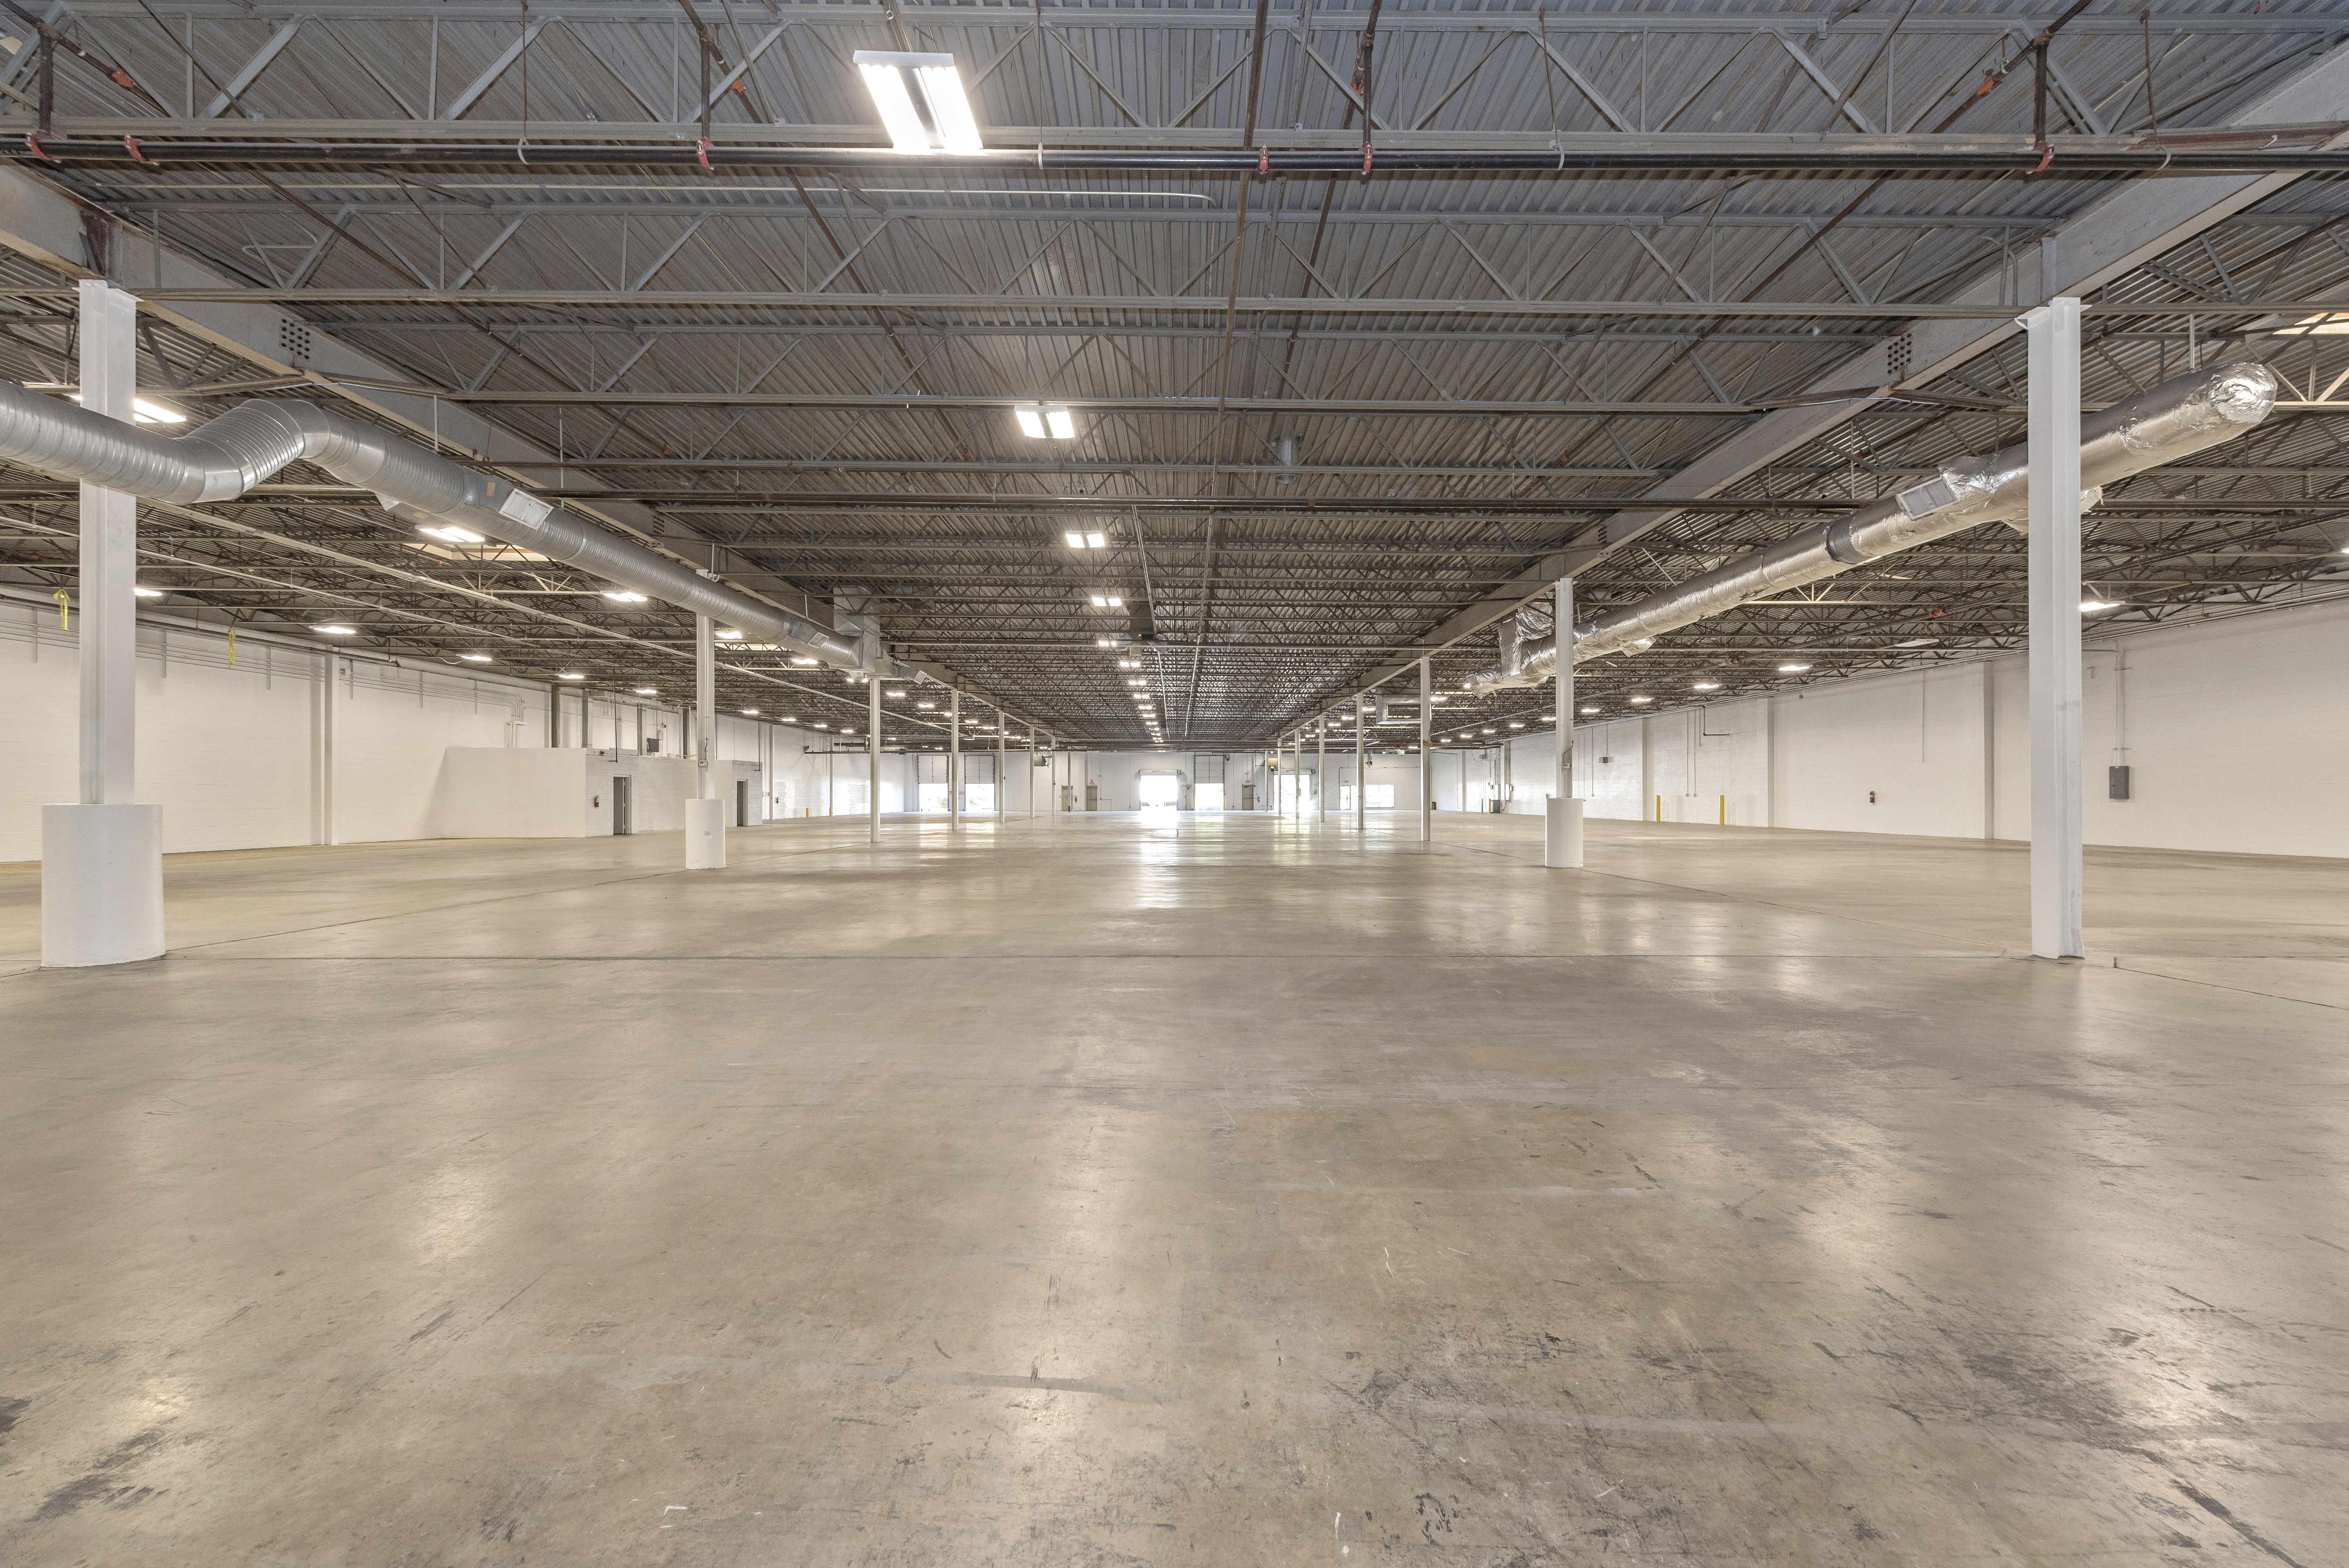 200 Monroe Center - 40K SF Newly Refreshed Warehouse